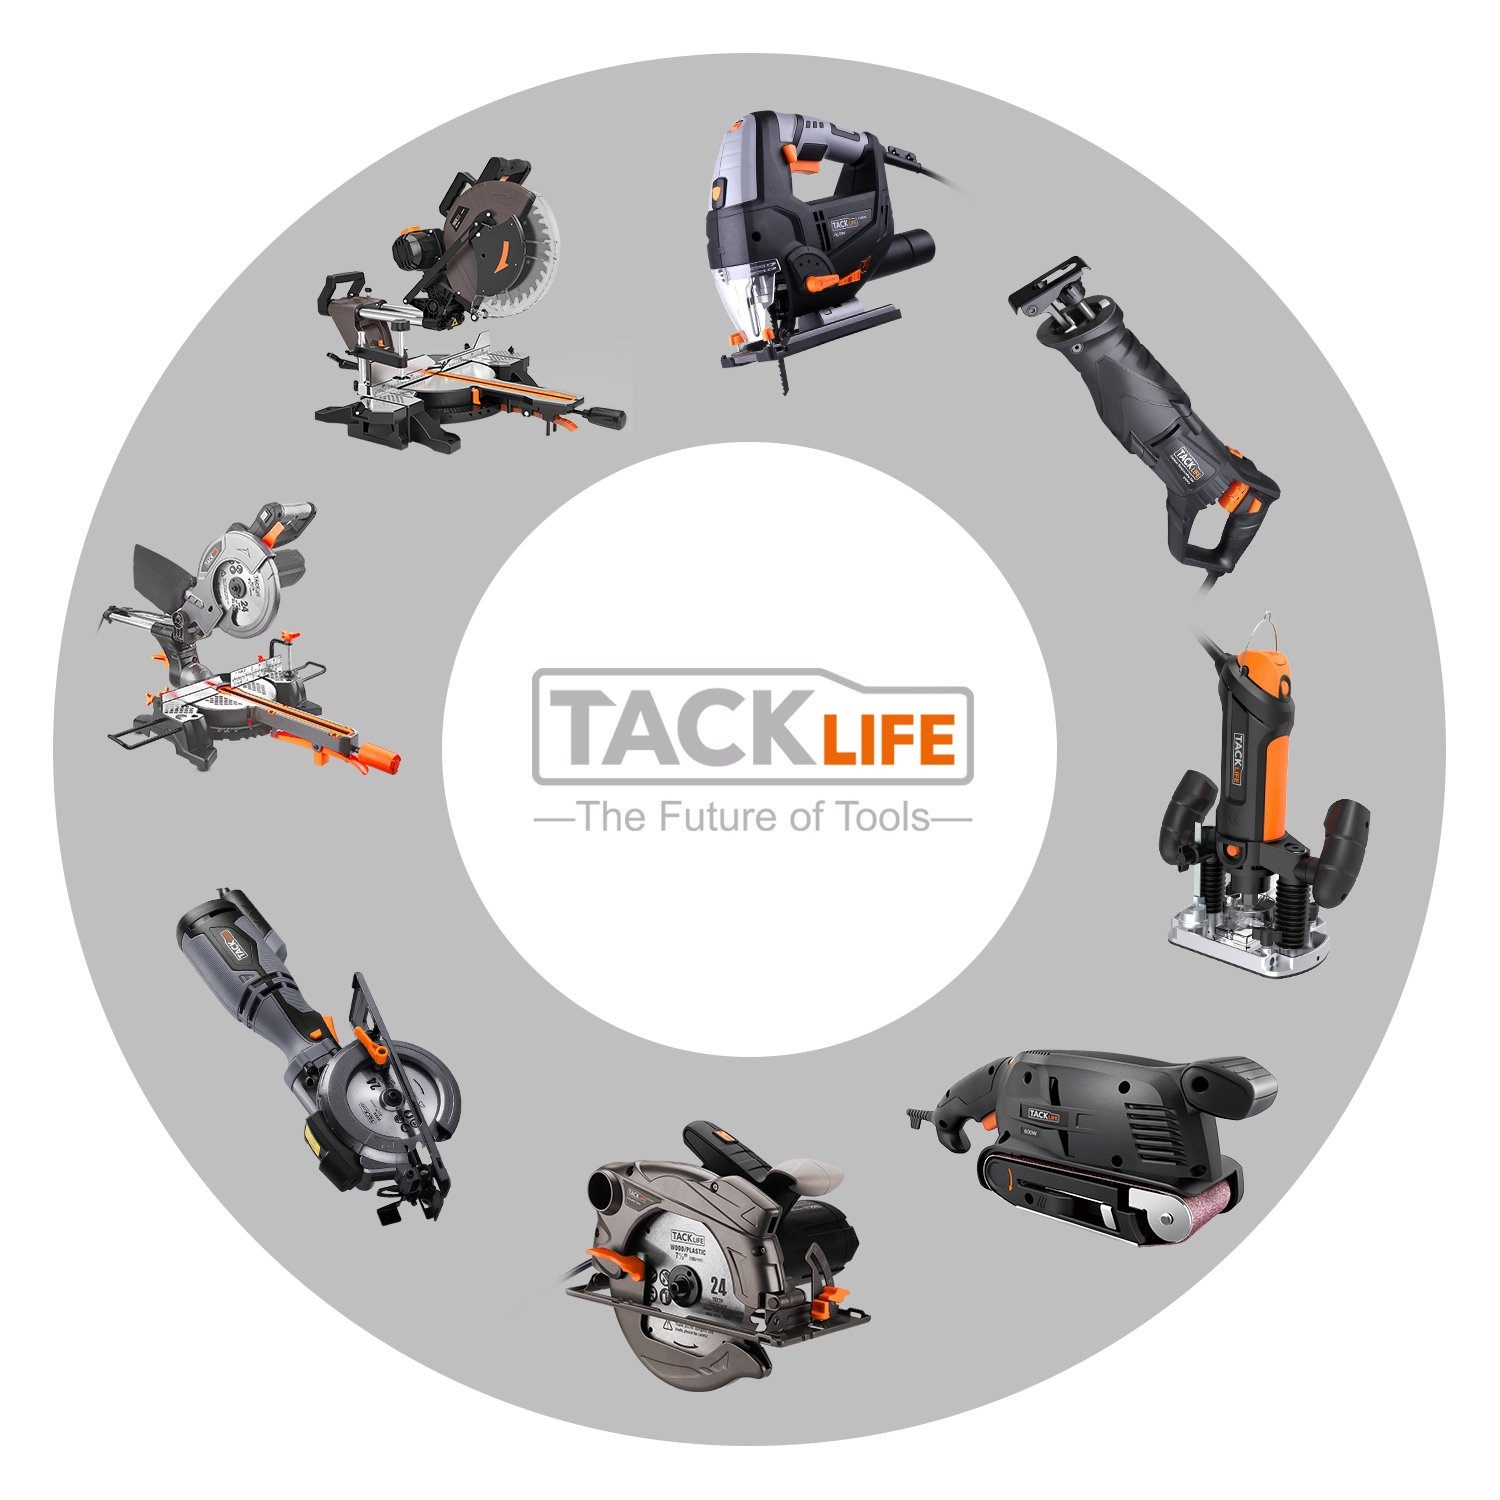 Mouse Detail Sander with 12Pcs Sanderpaper, 12000 OPM Sander with Dust Collection System For Tight Spaces Sanding in Home Decoration, DIY by TACKLIFE (Image #9)